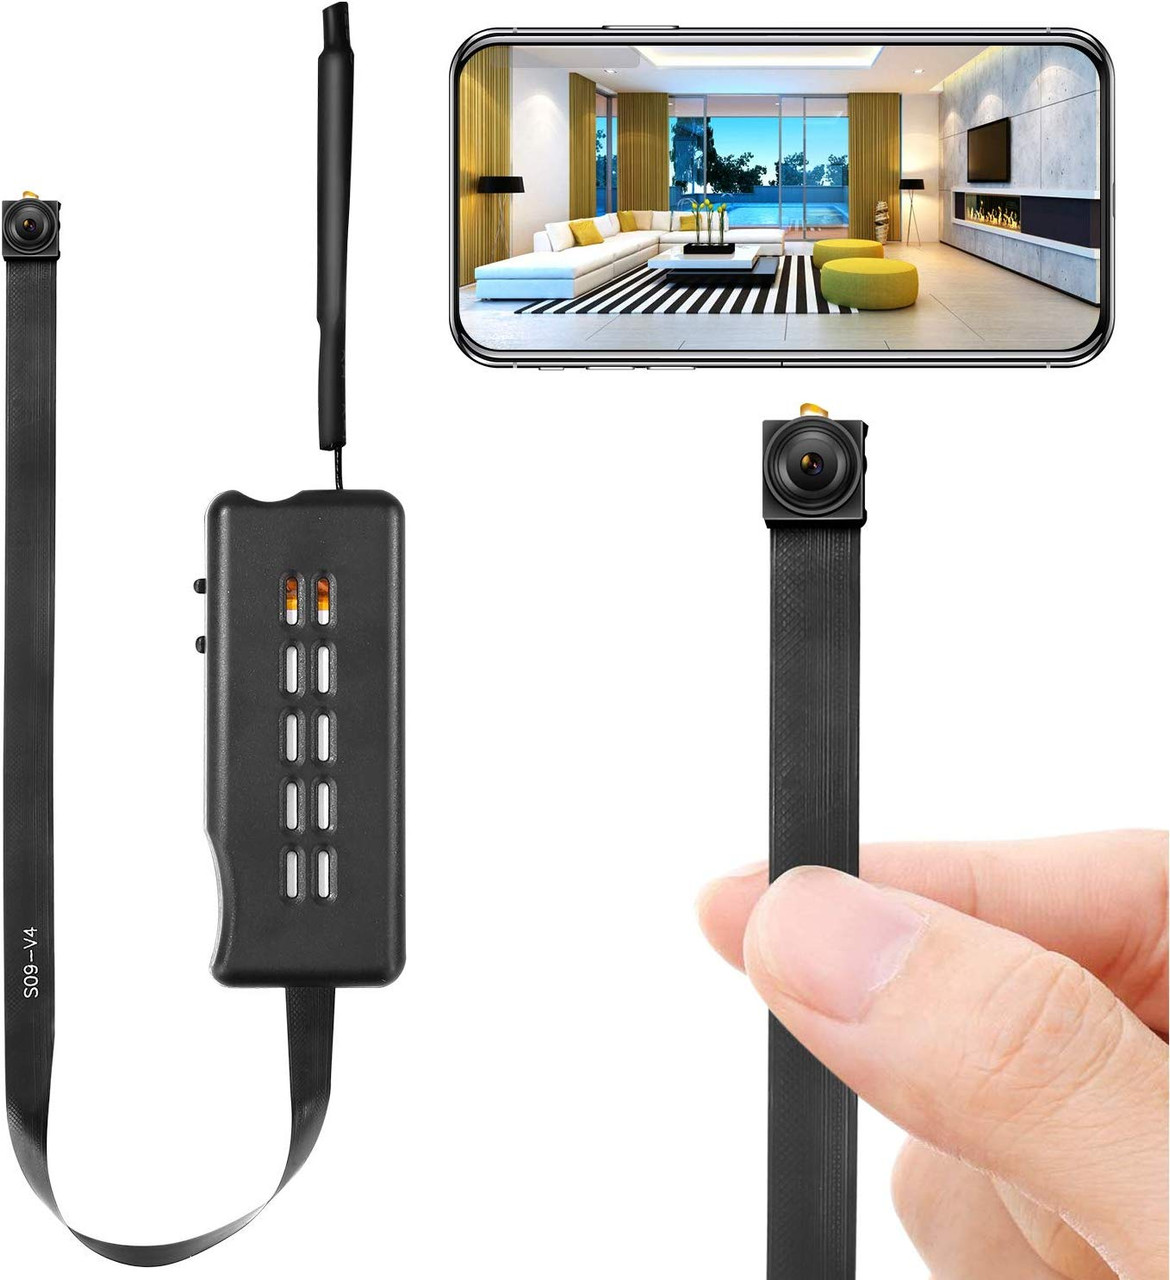 Hidden WiFi HD Mini IP Nanny Cam Wireless Surveillance Video Camera Spy Small